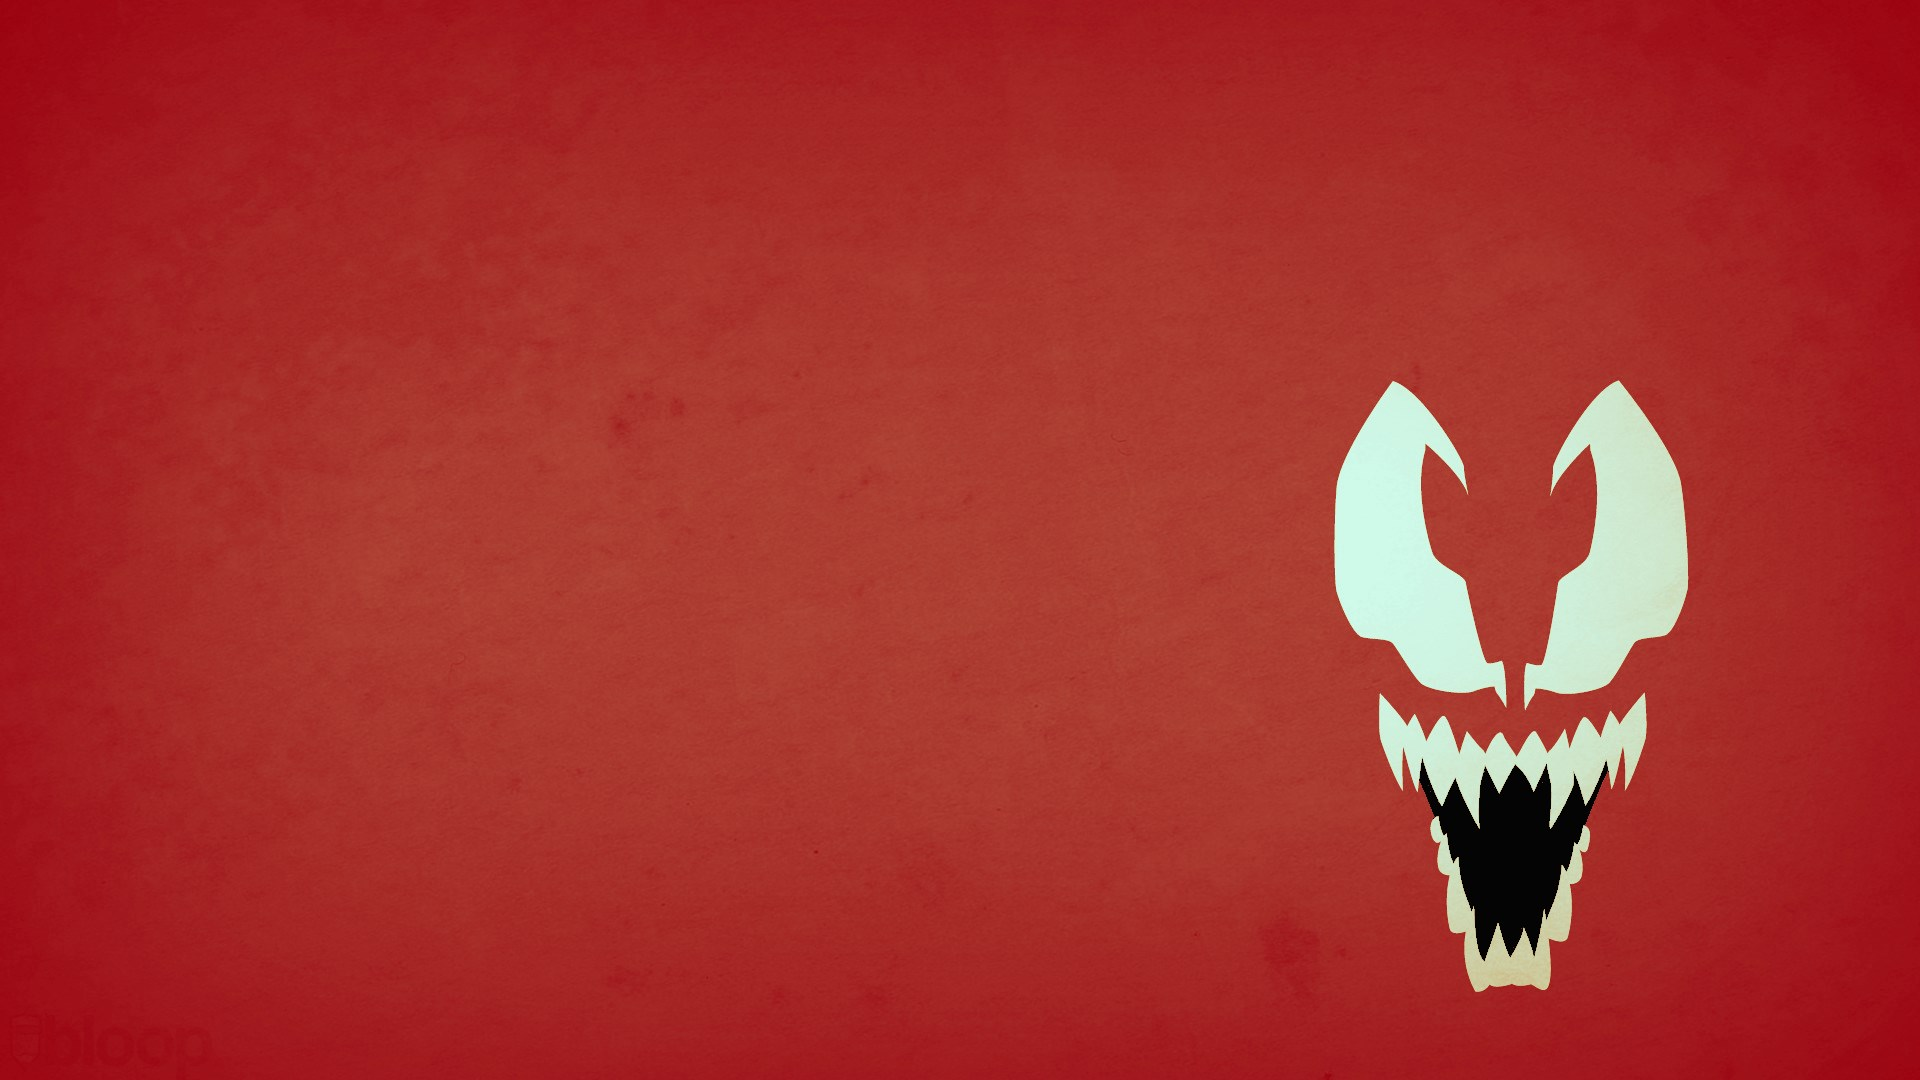 1920x1080-free-desktop-pictures-carnage-wallpaper-wpc580704